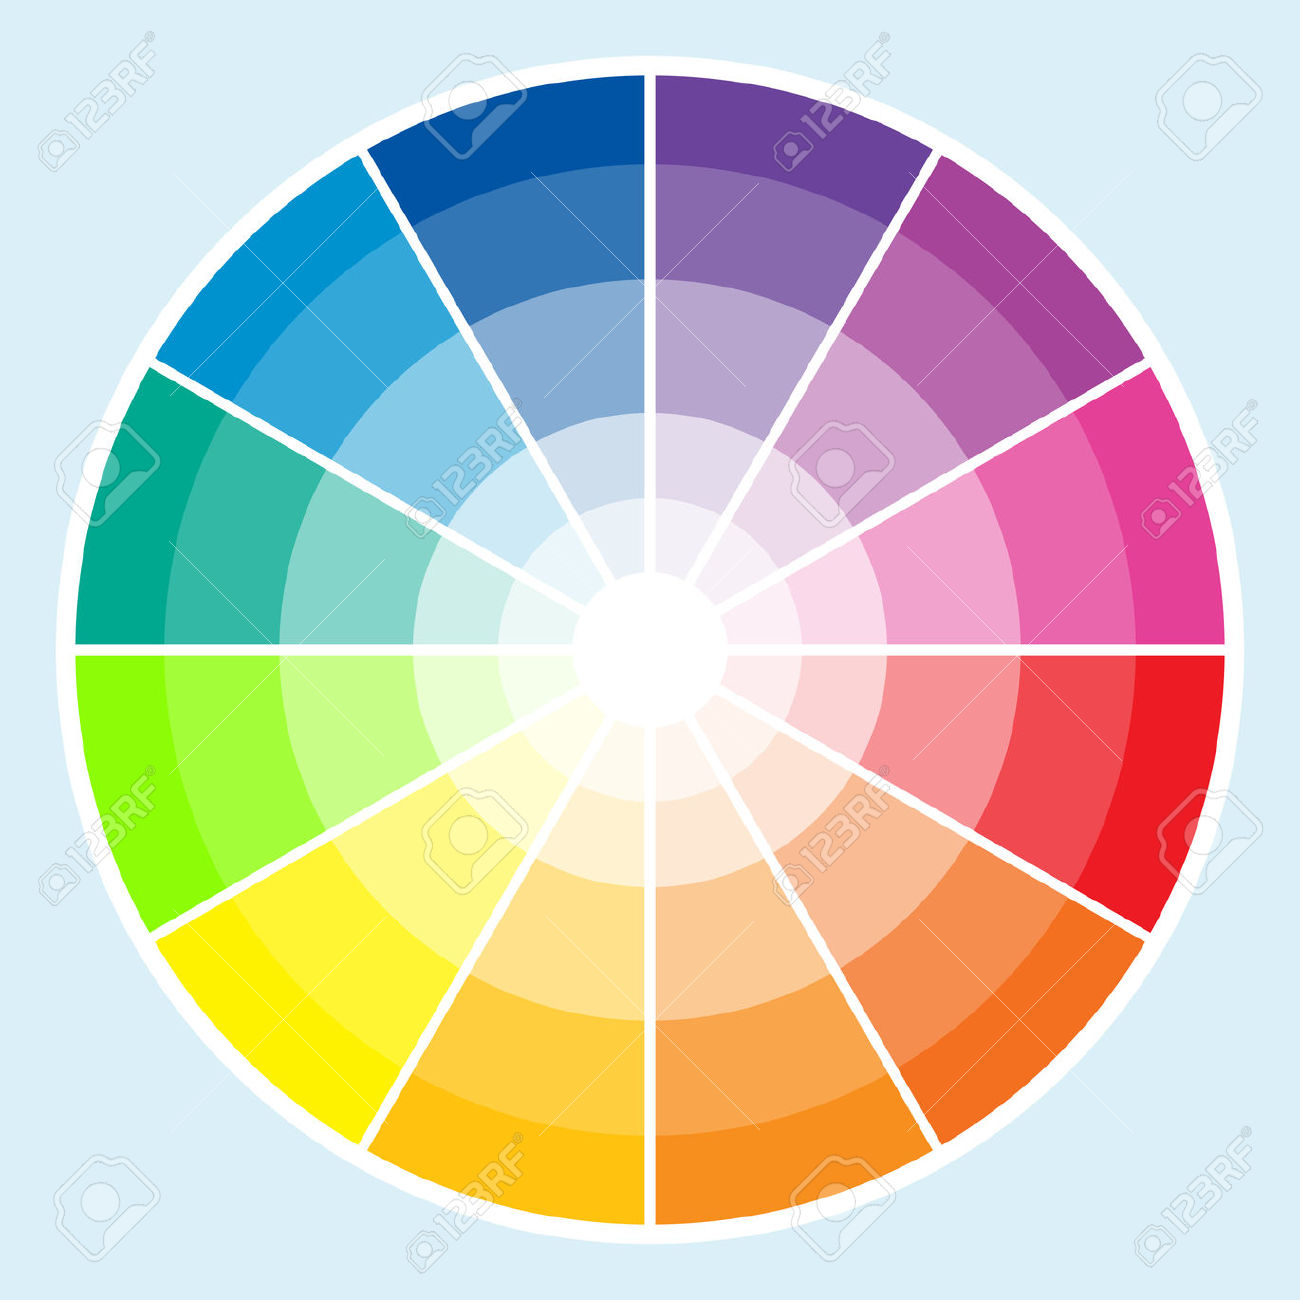 Classic Color Wheel With The Colors Moving Into Lighter Shades.